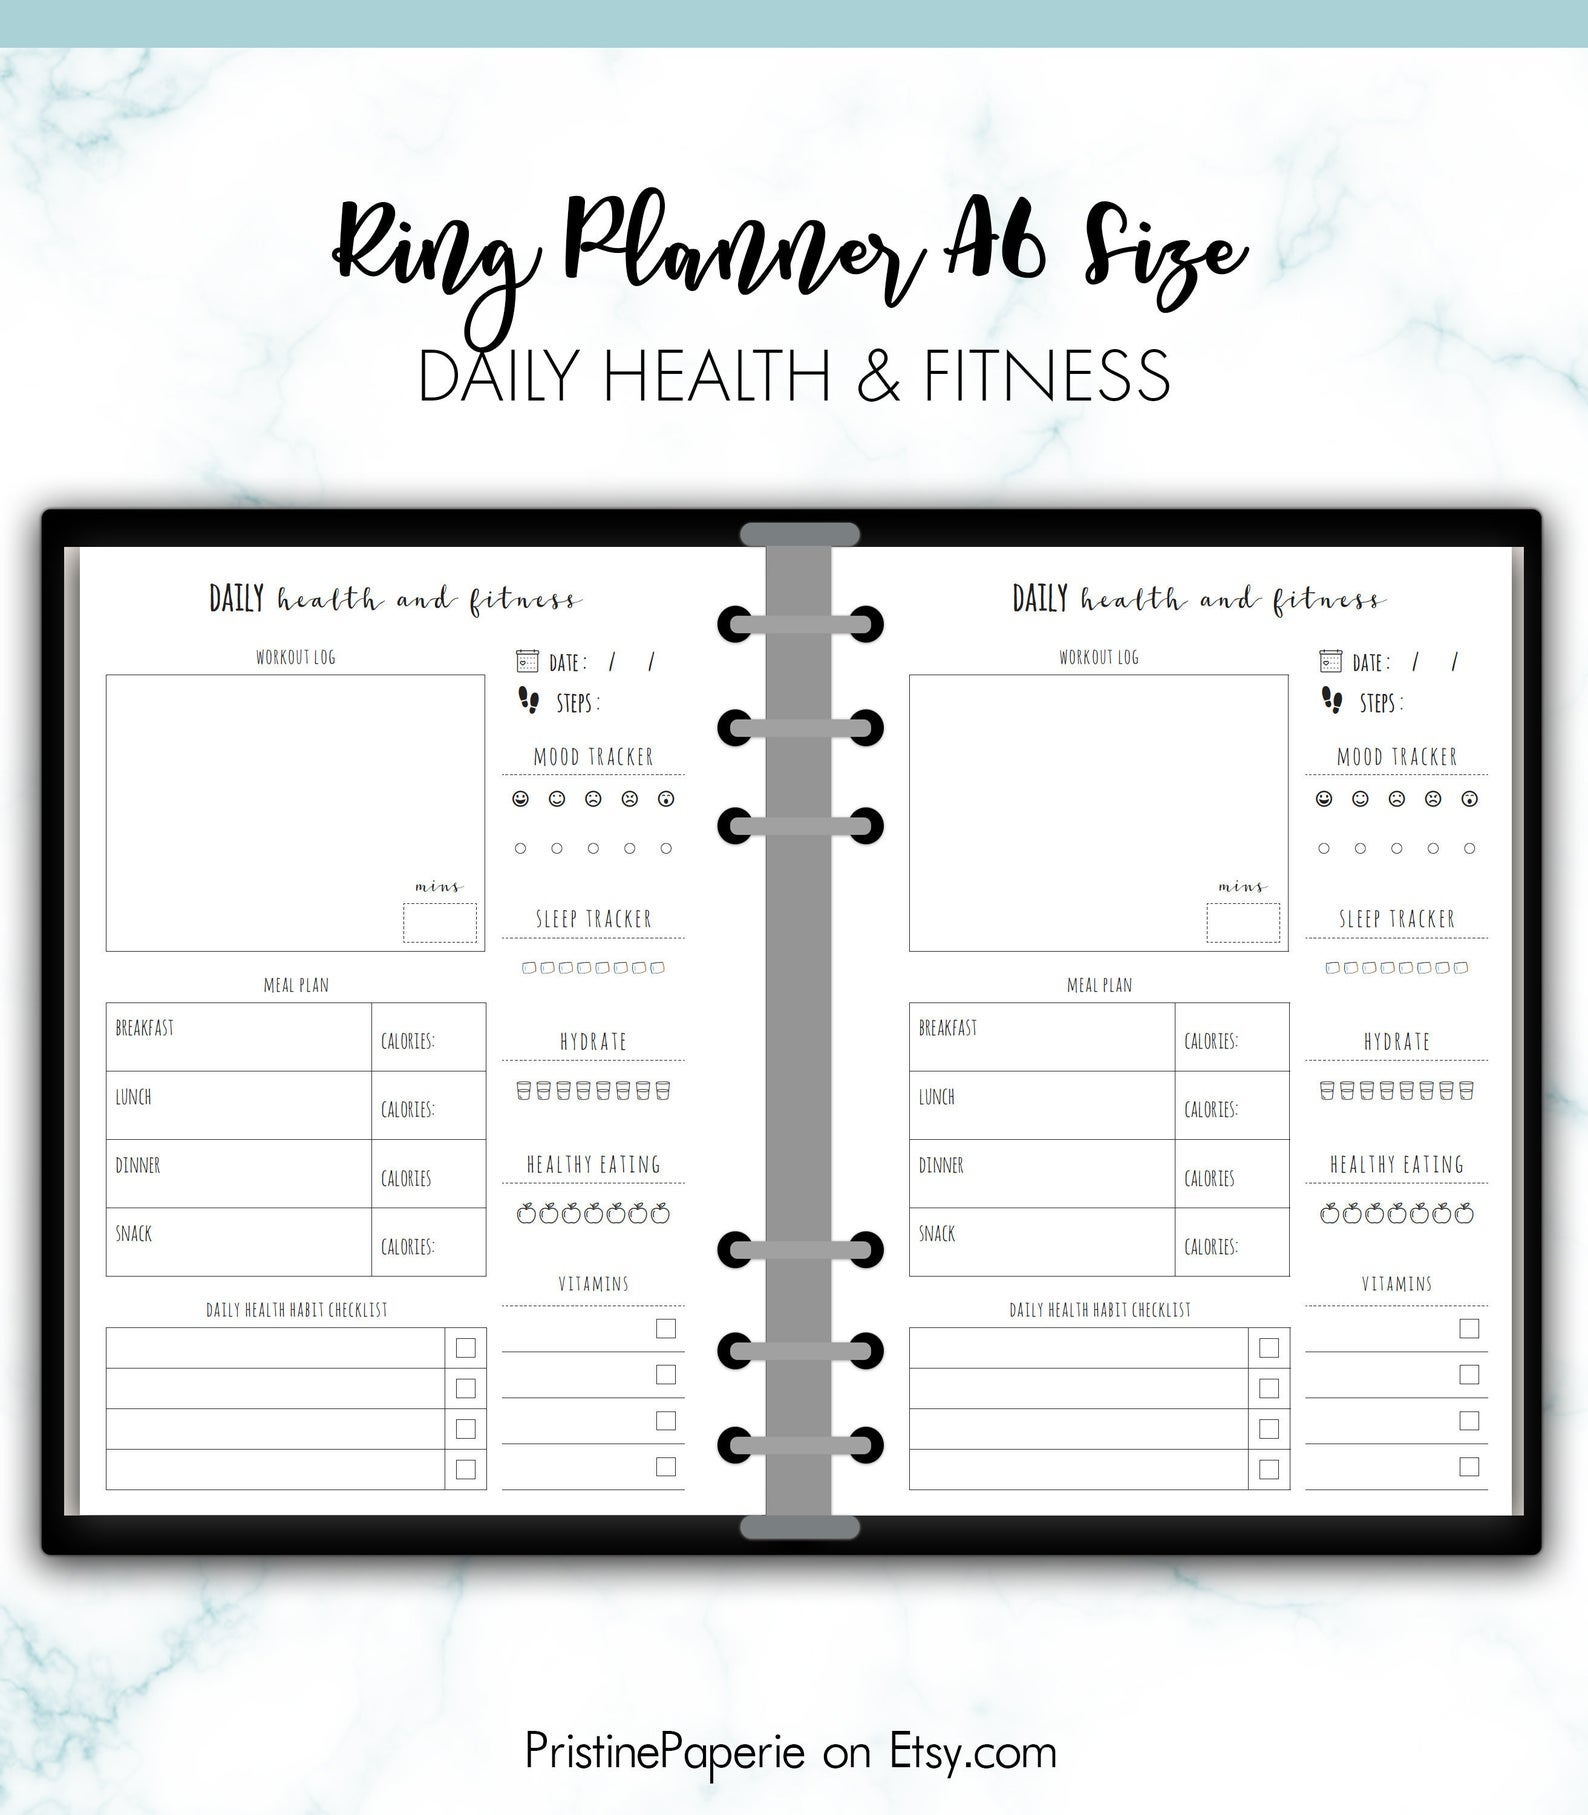 RING A6 Daily Health and Fitness Planner Insert Printab